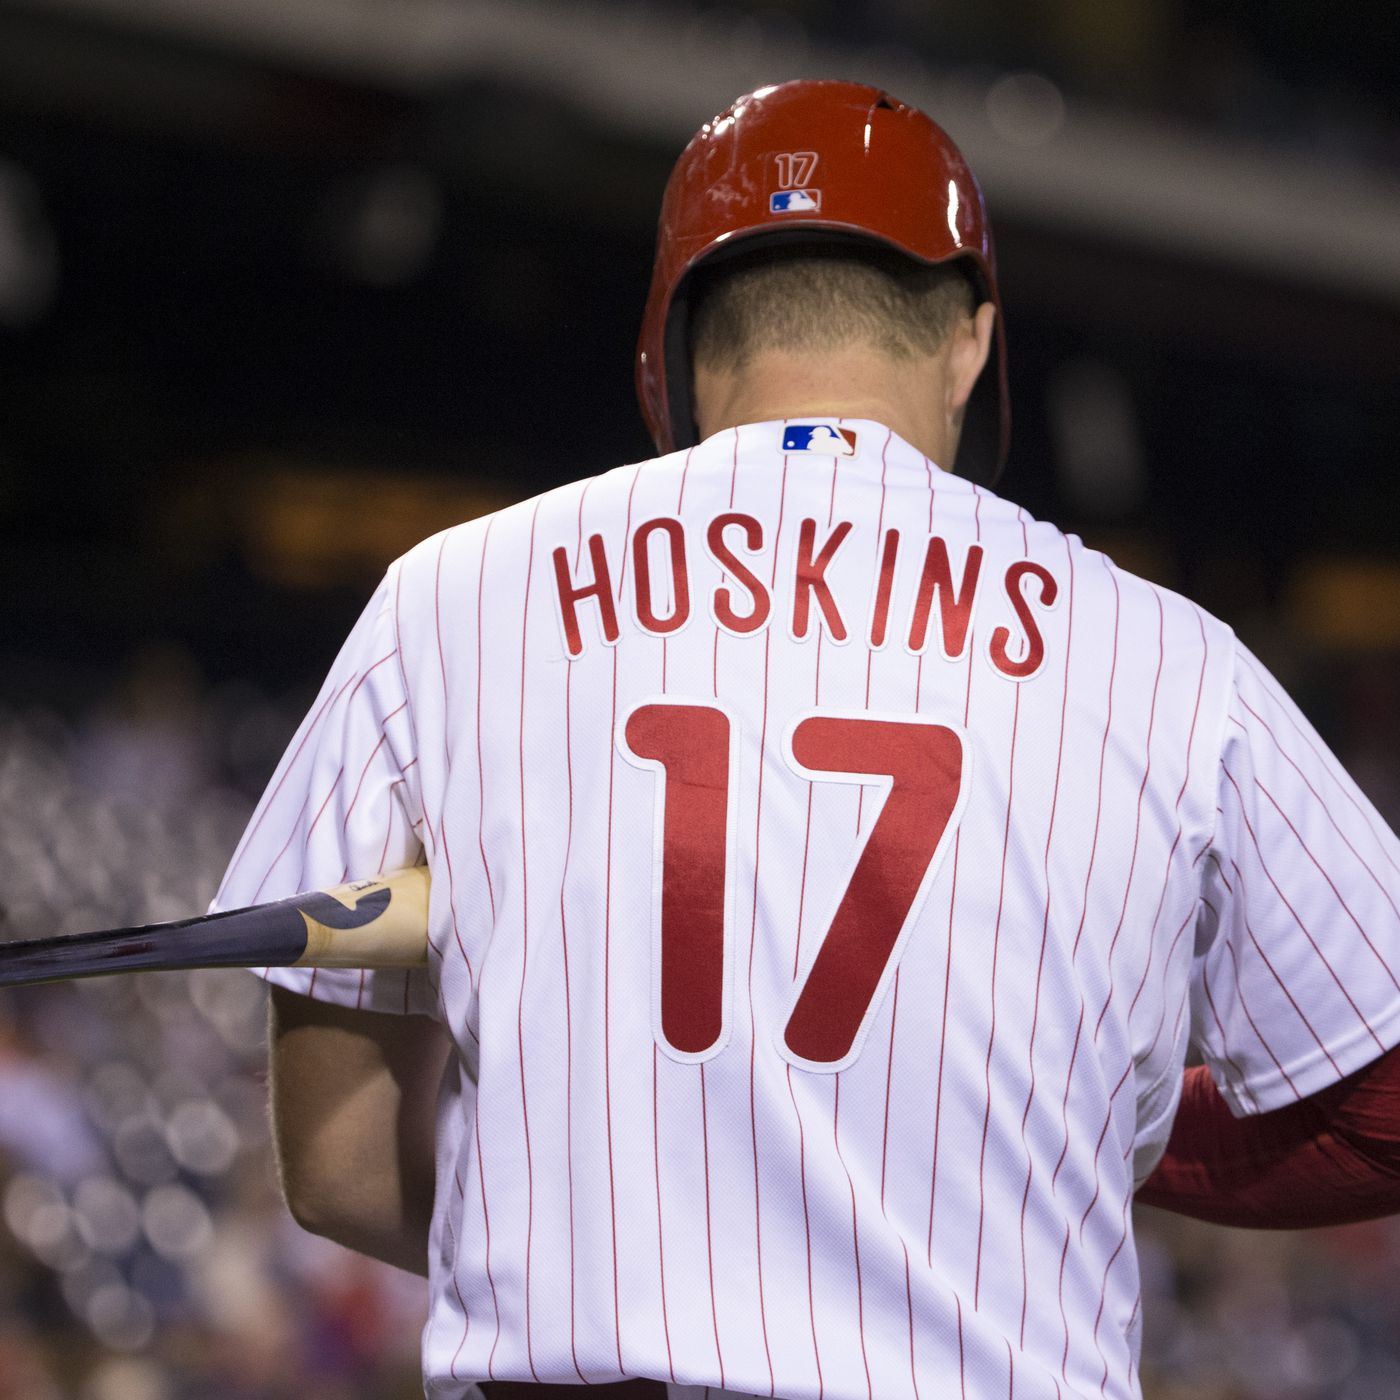 2018 Phillies Preview  Is Rhys Hoskins homering yet  - The Good Phight dee202e815a